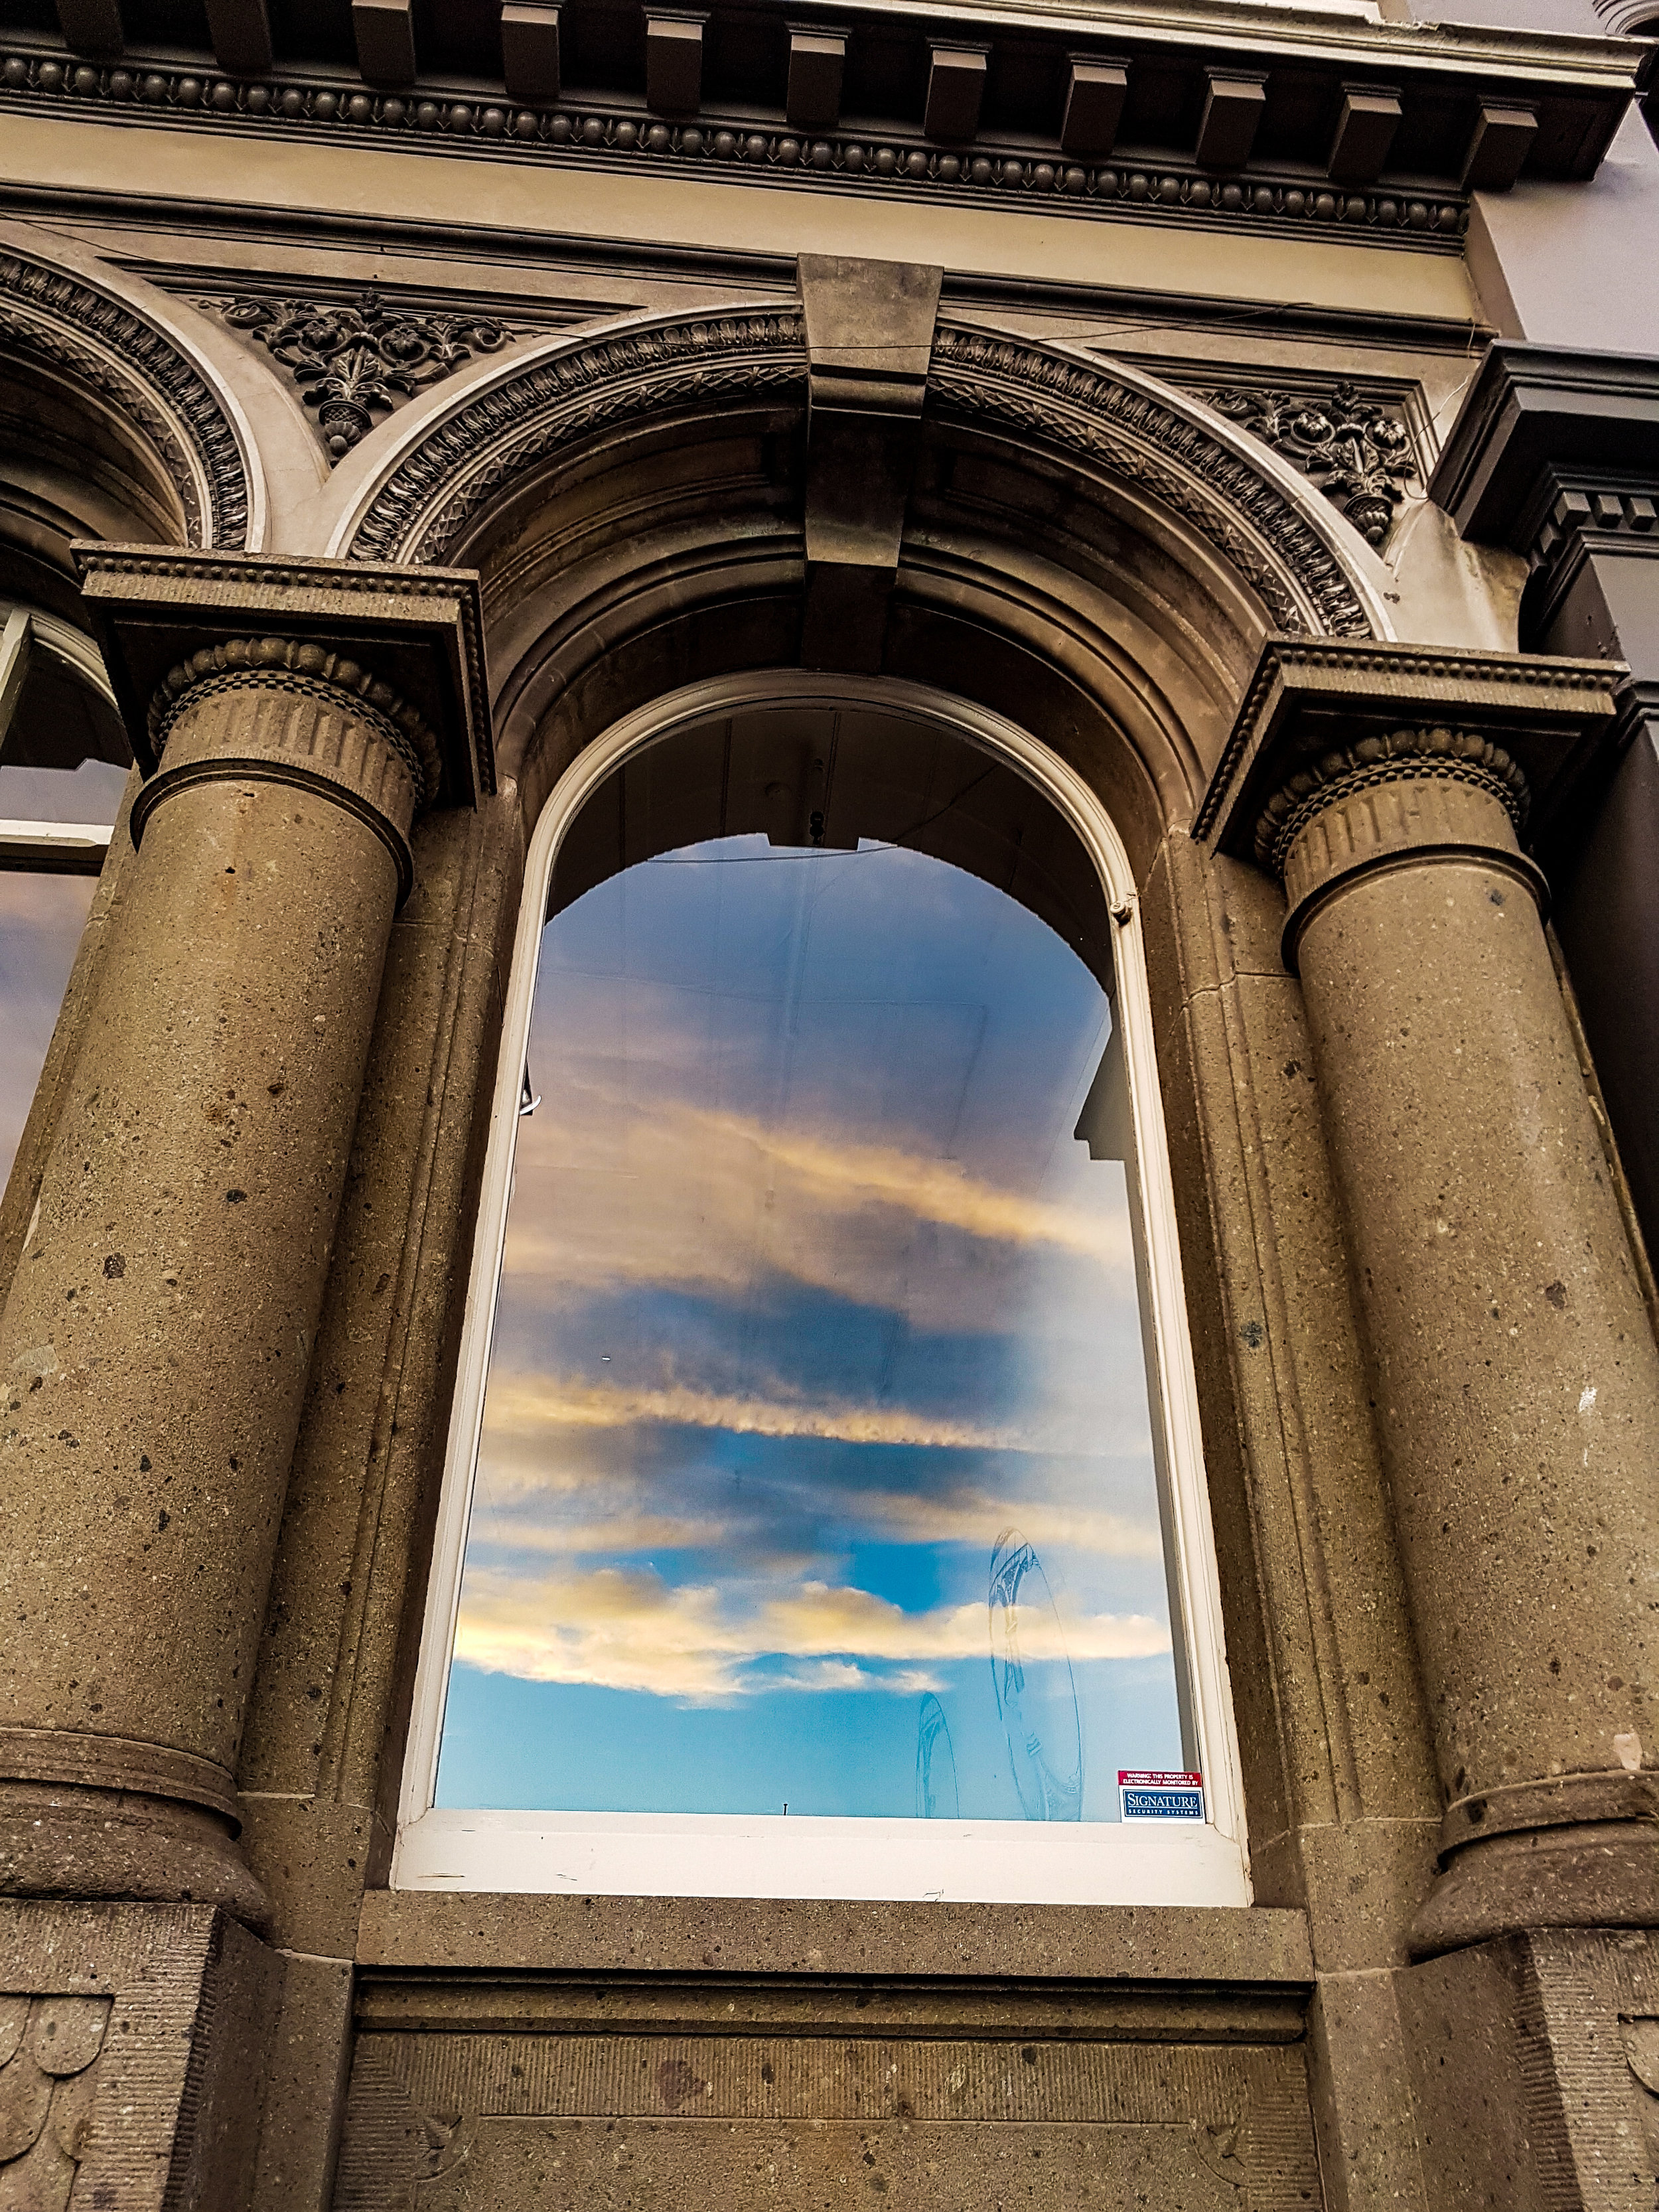 Blue skies in an arched heritage window Dunedin